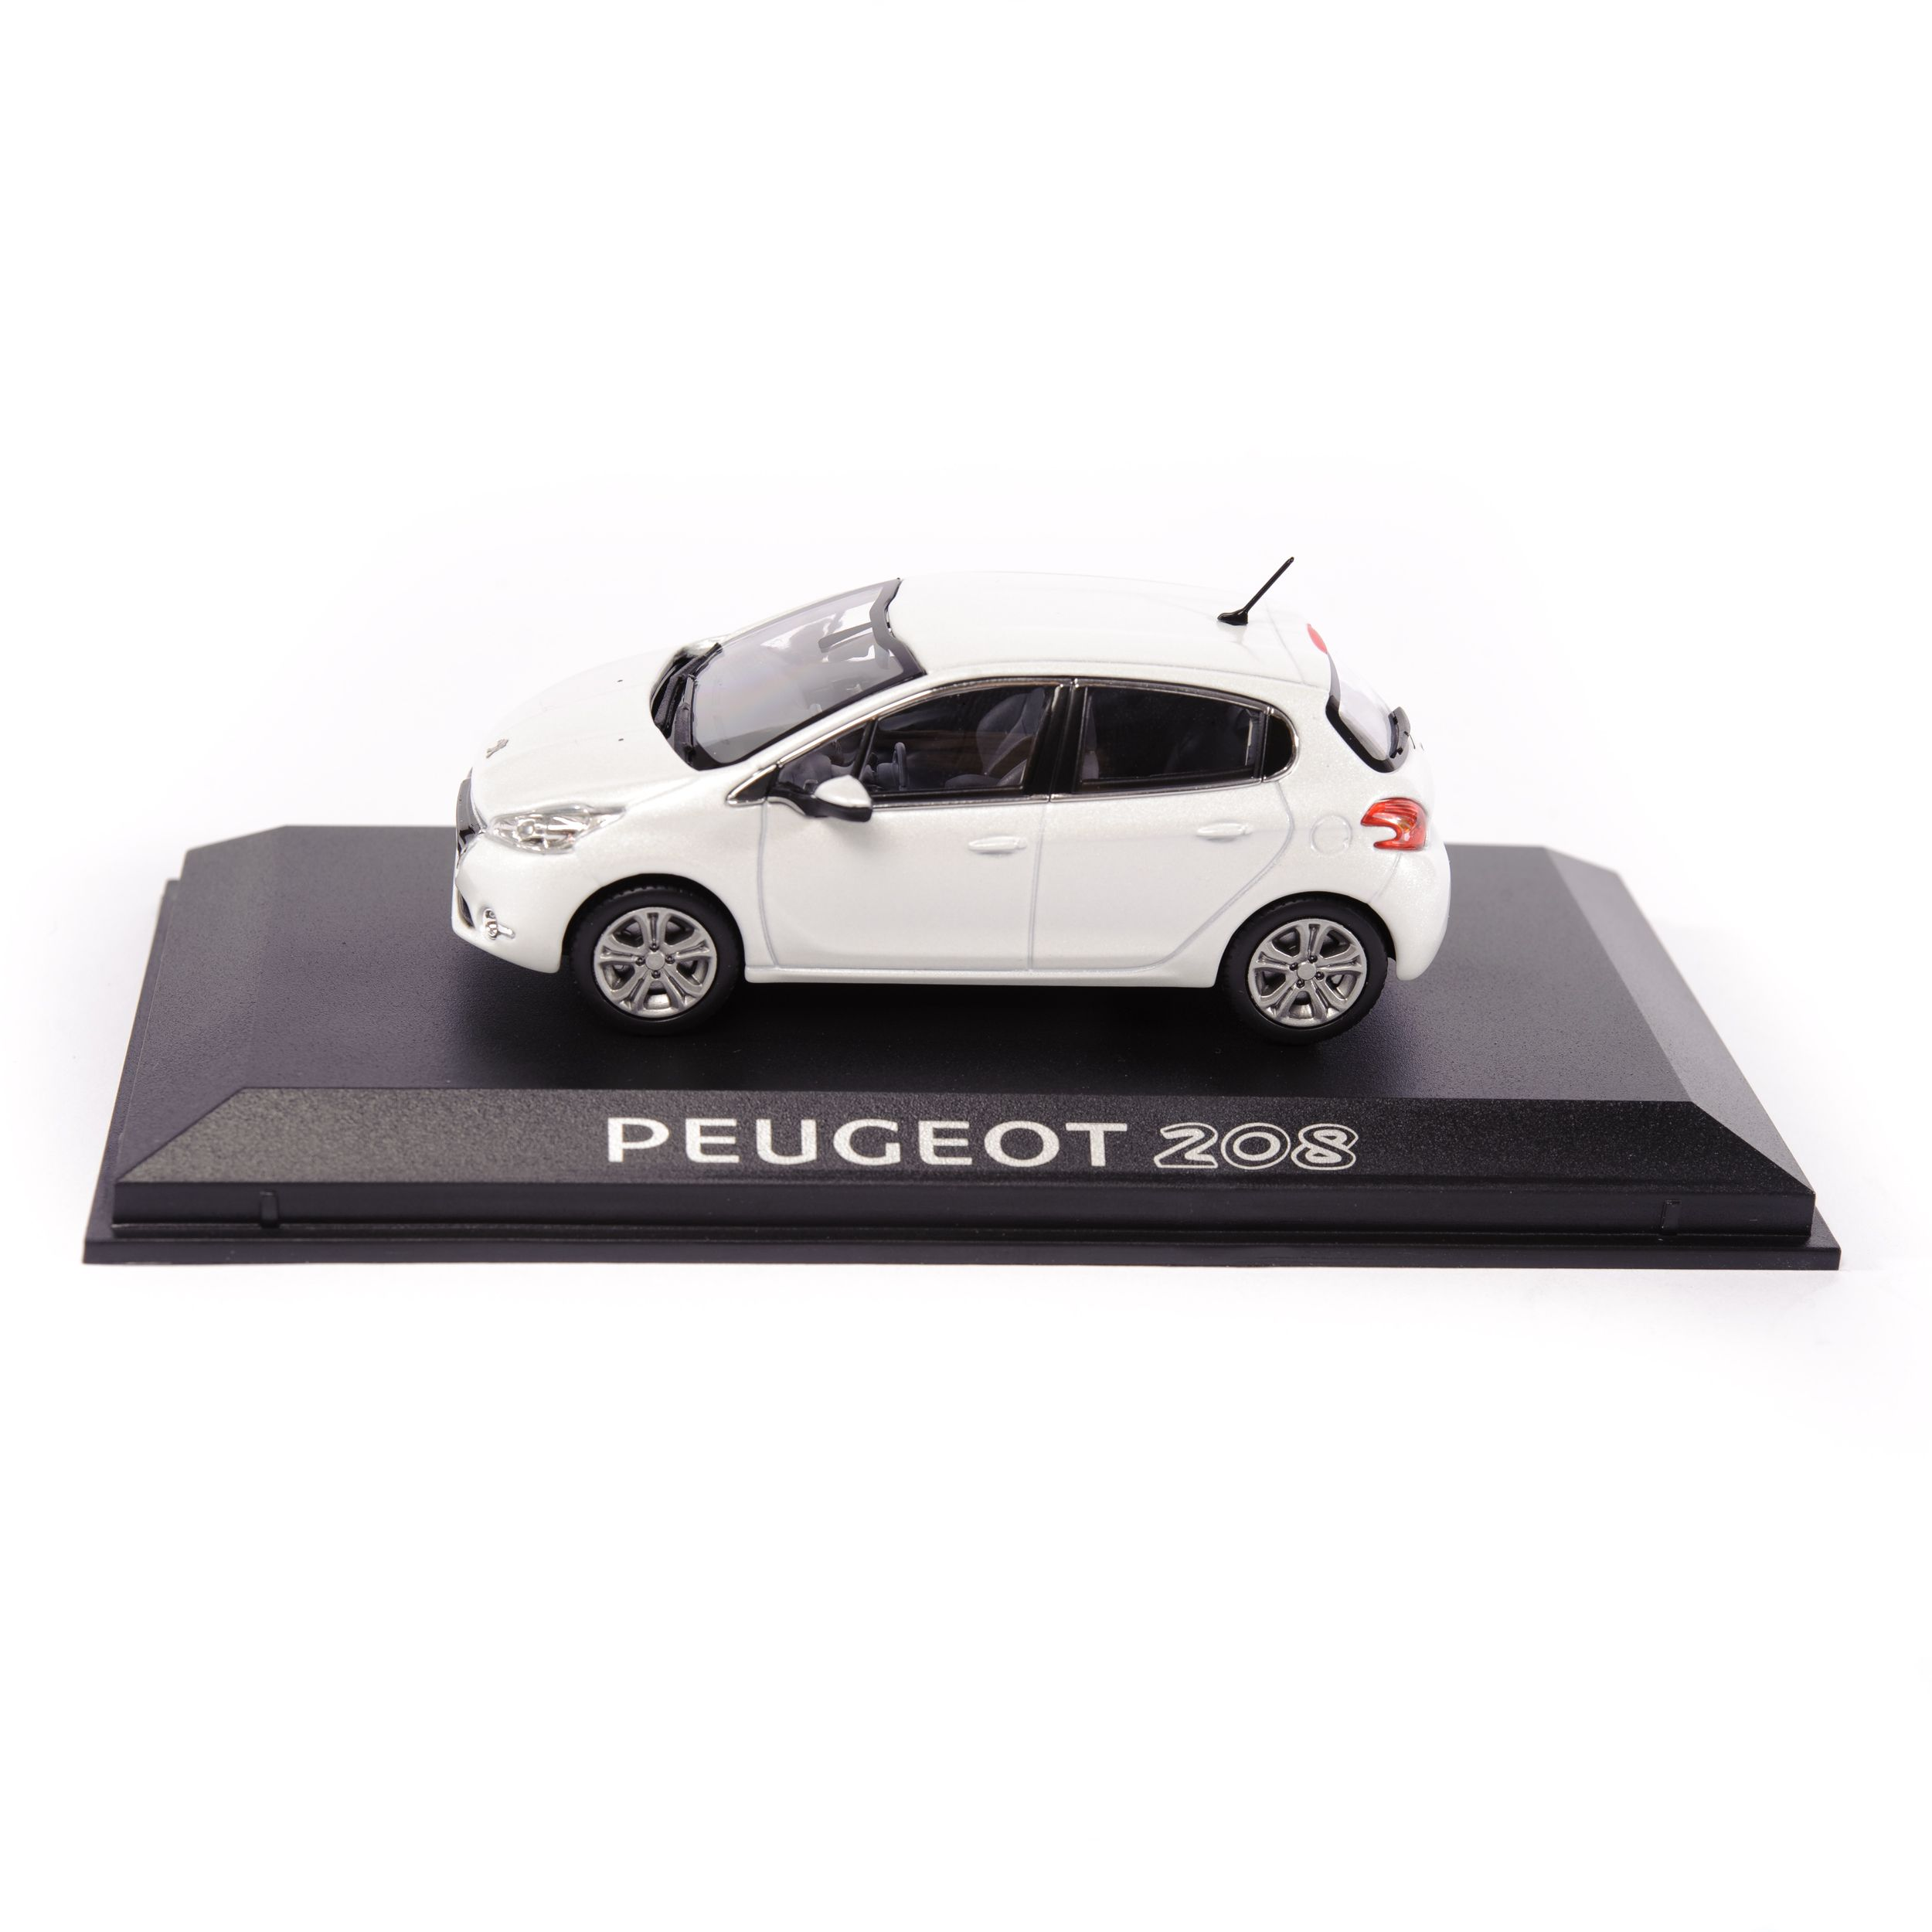 Peugeot 208 - Let your body drive